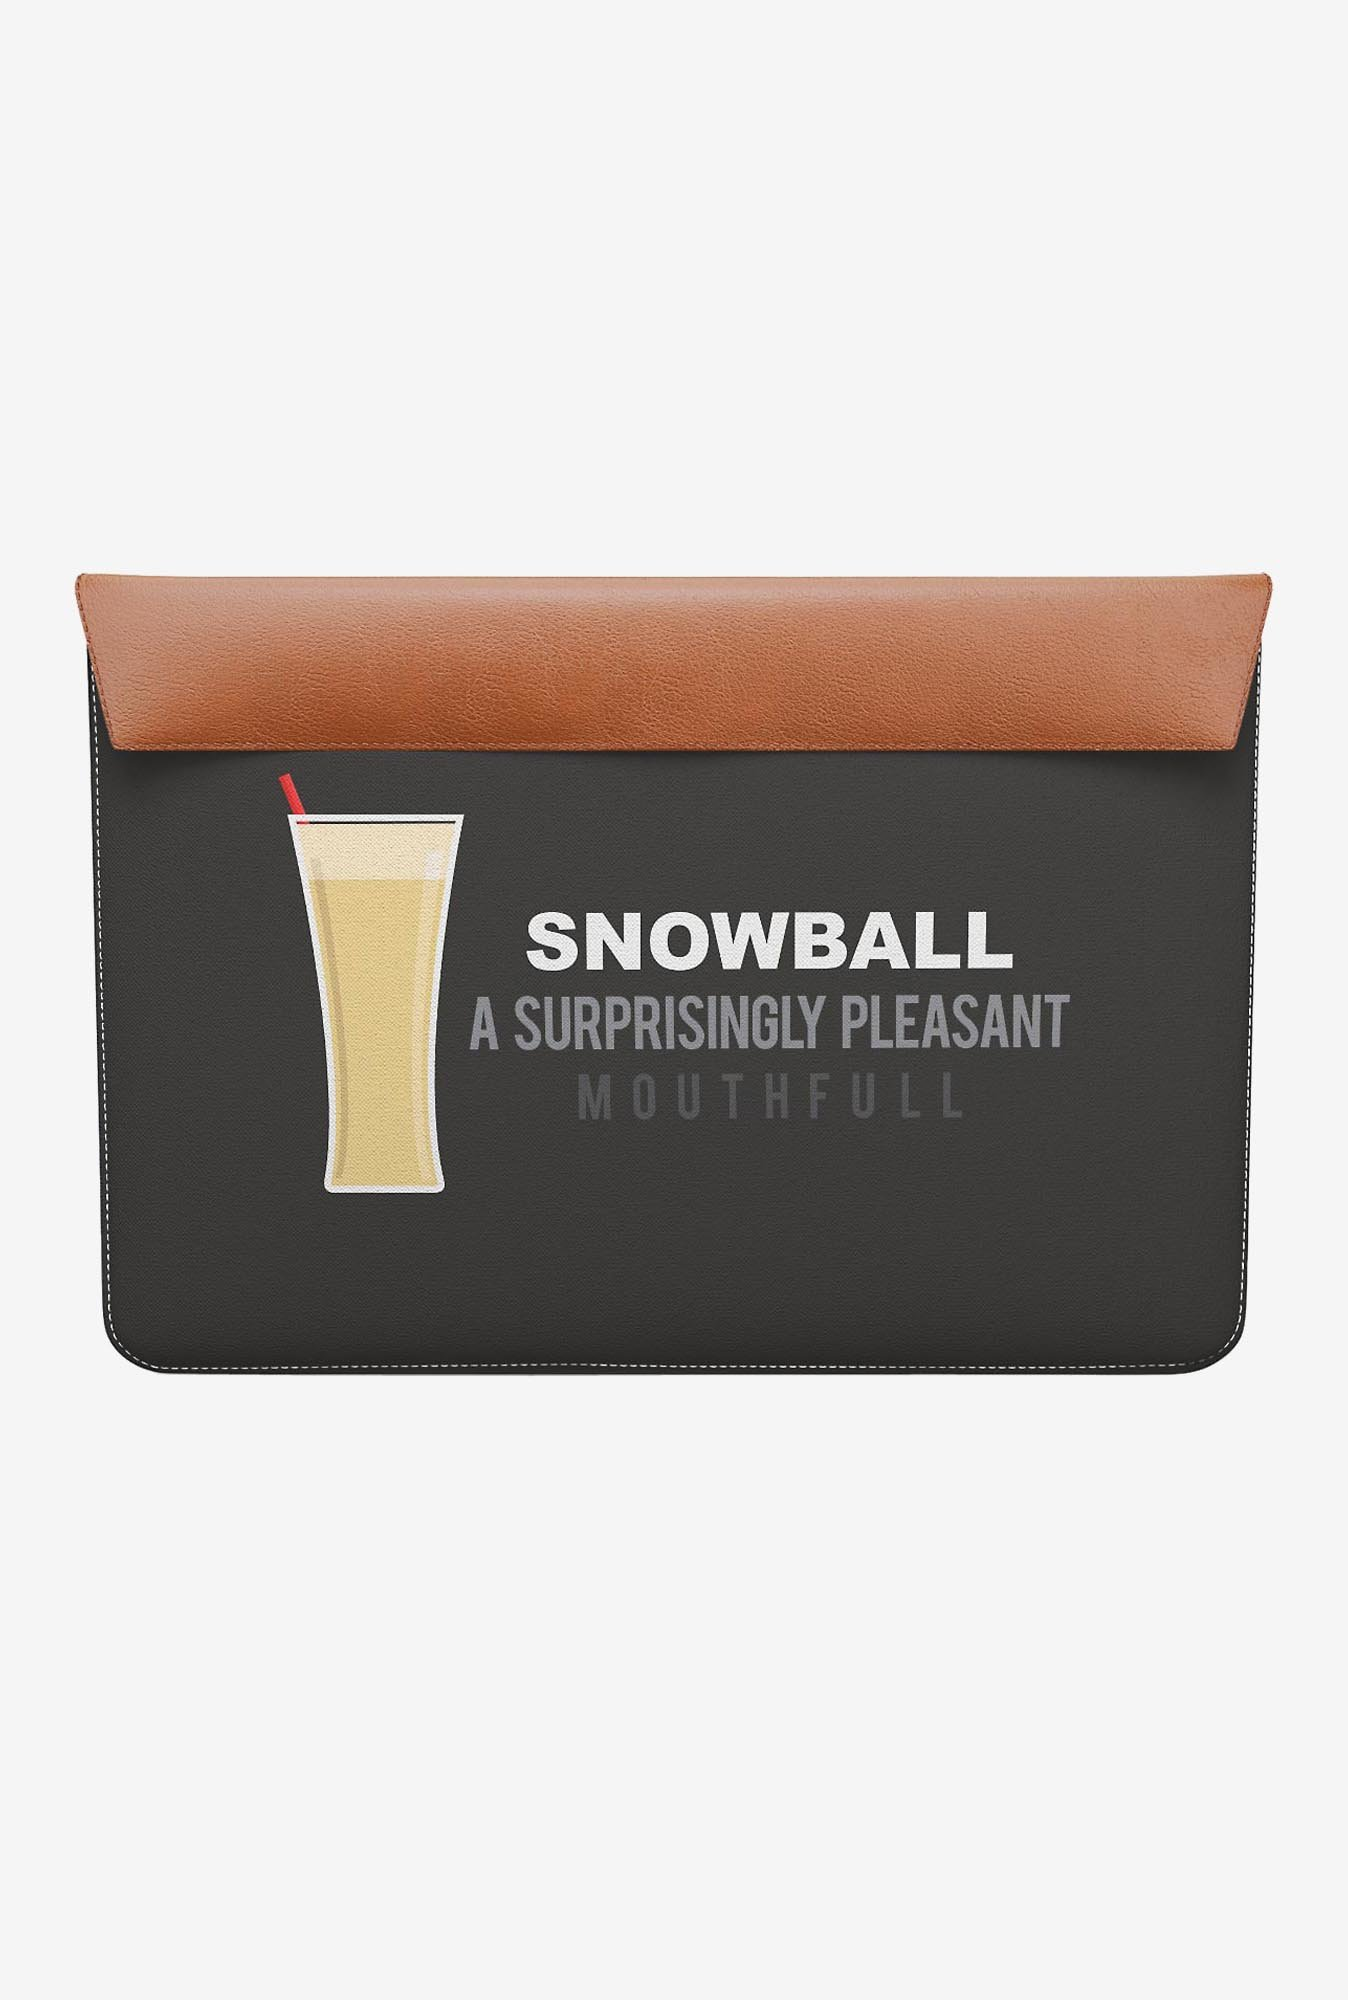 "DailyObjects Snowball MacBook Air 11"" Envelope Sleeve"